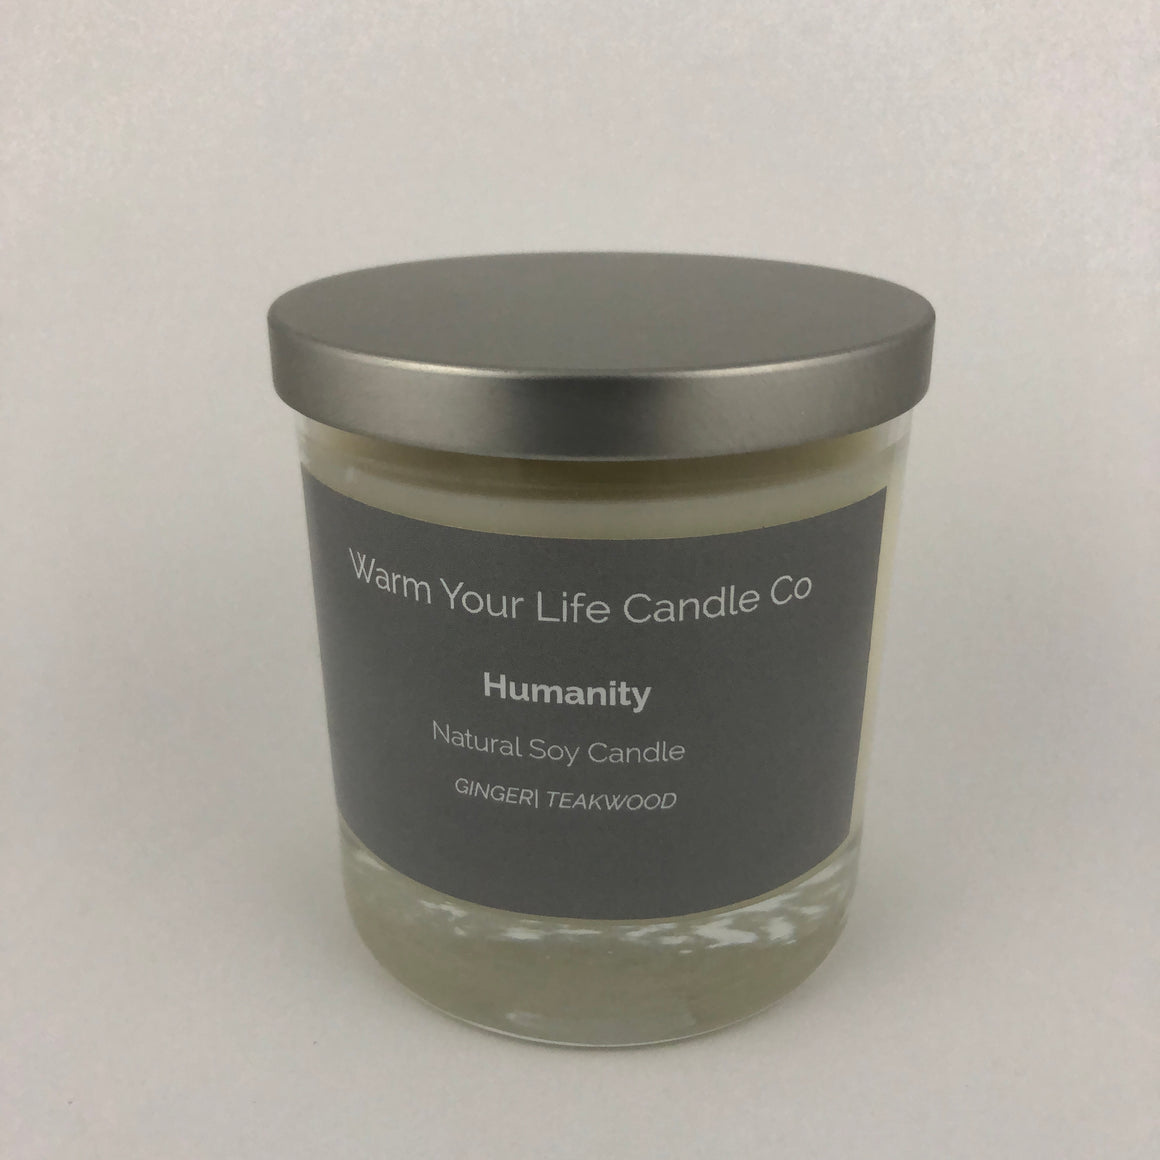 Humanity Soy Candle